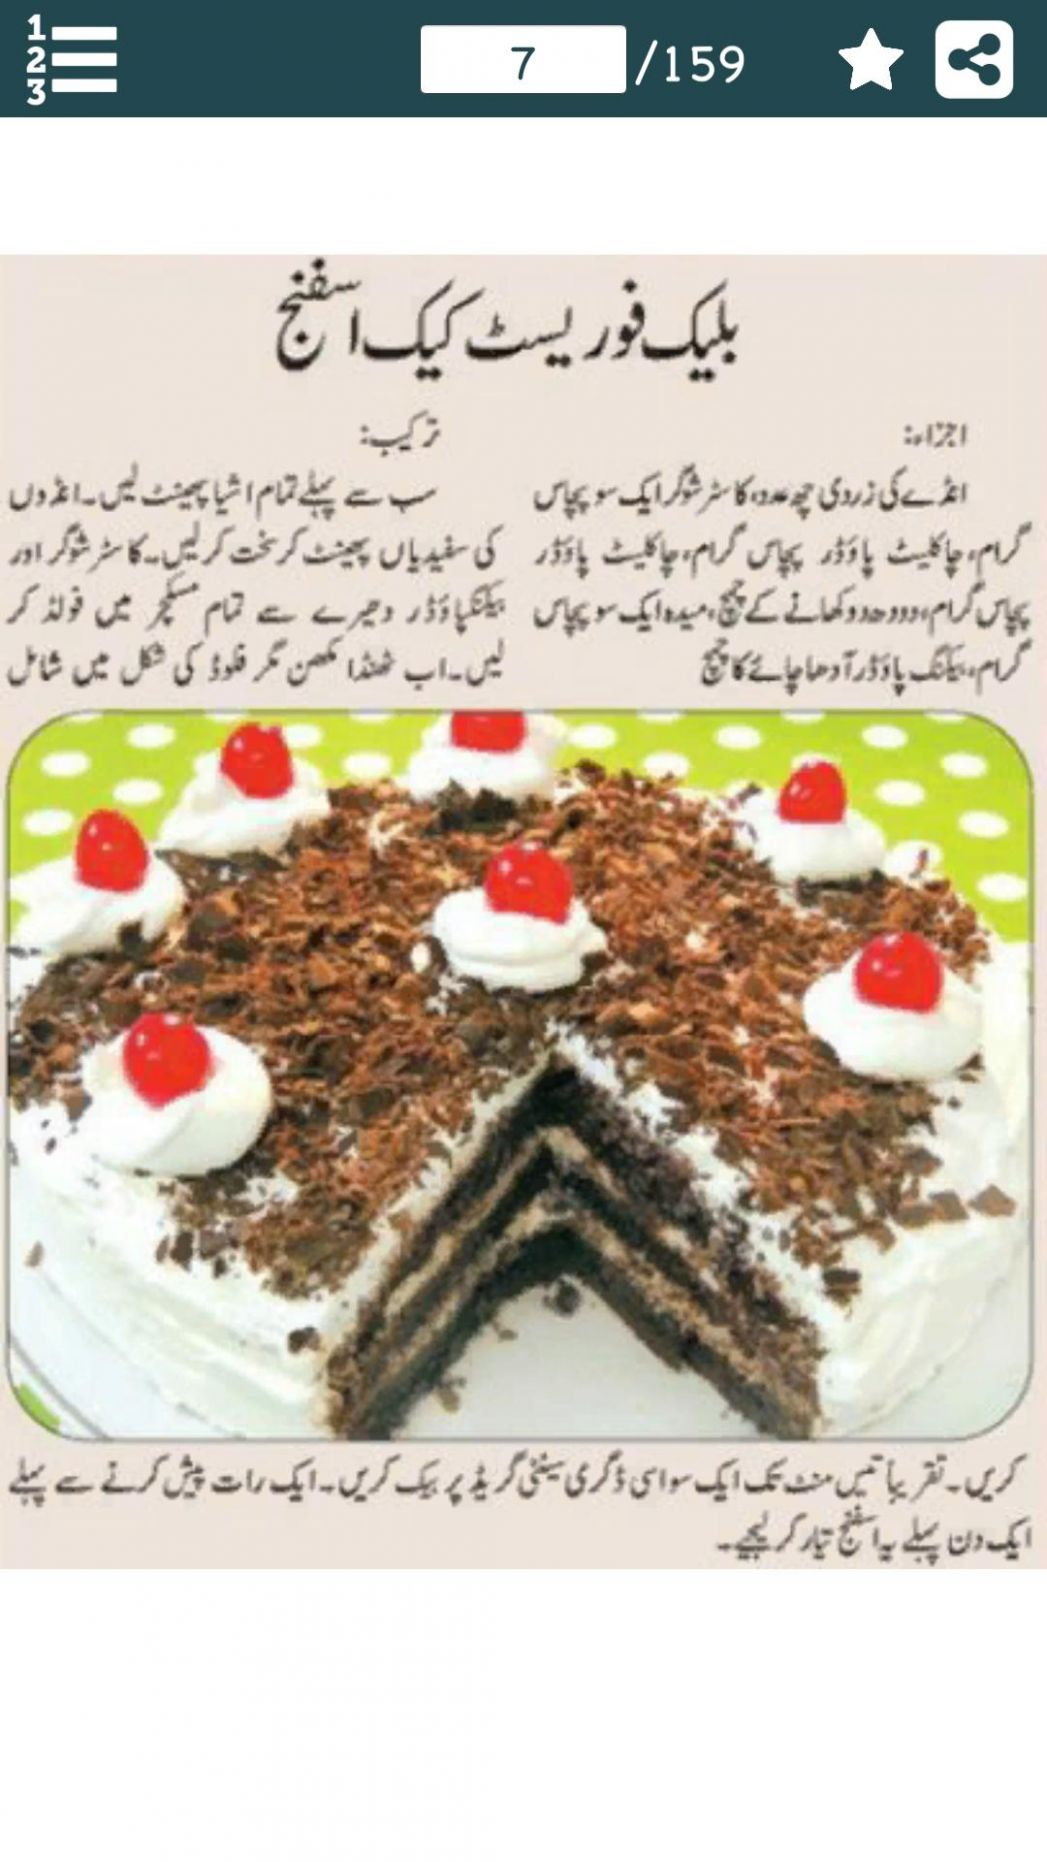 Cake Recipes in URDU for Android - APK Download - Recipes Cake In Urdu